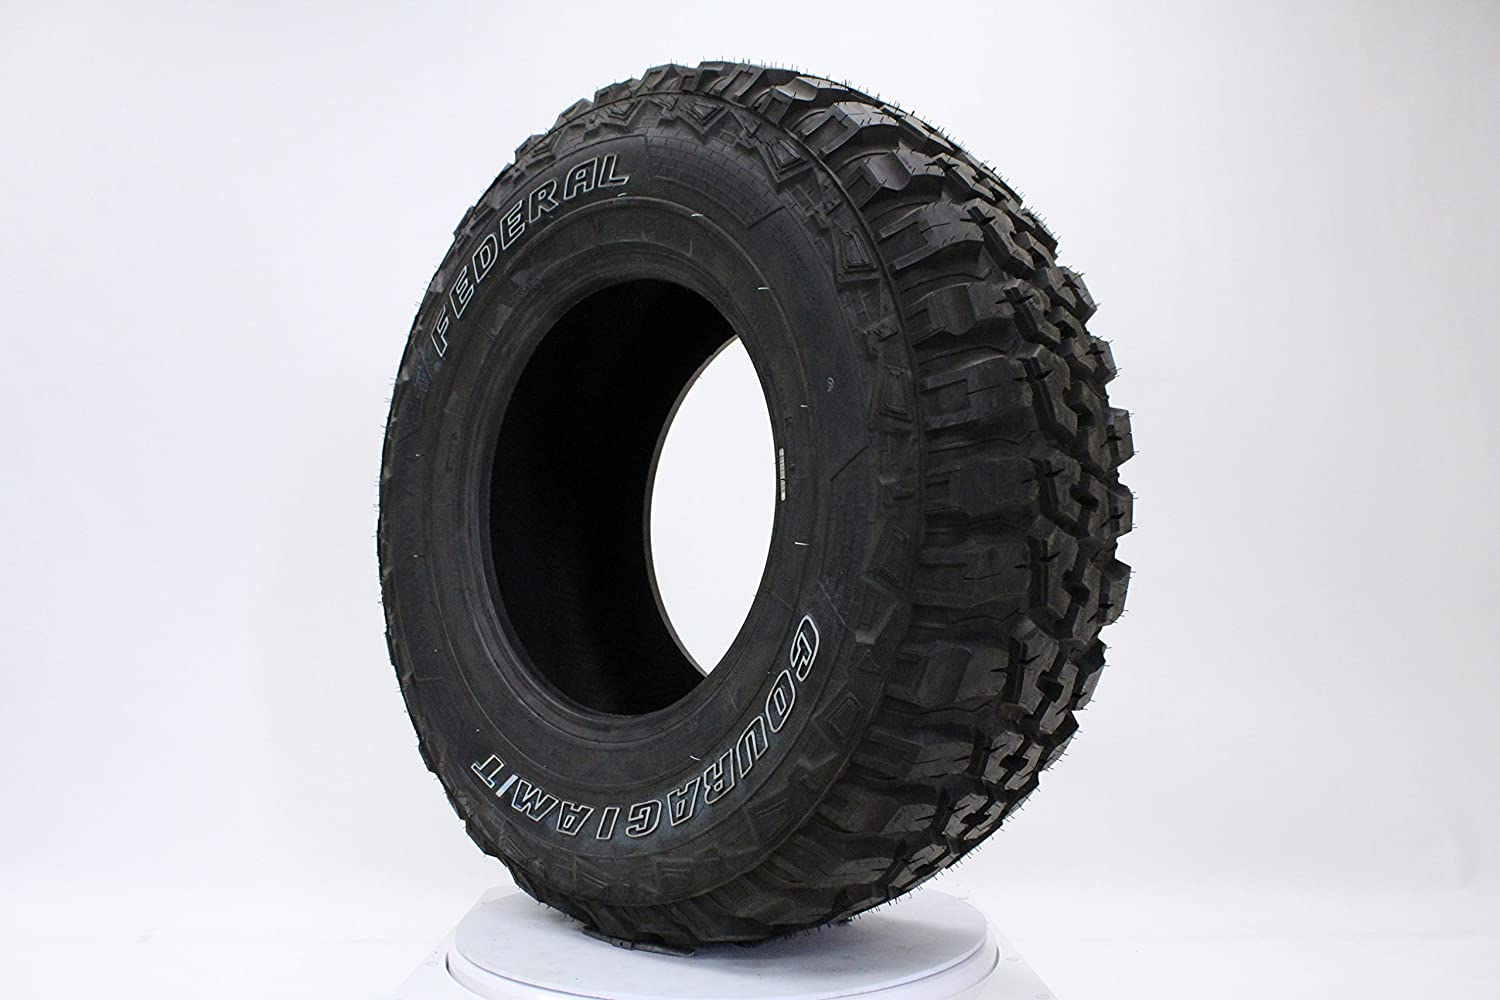 Federal Couragia Mud Terrain M/T Radial Tire Model LT235/75r15